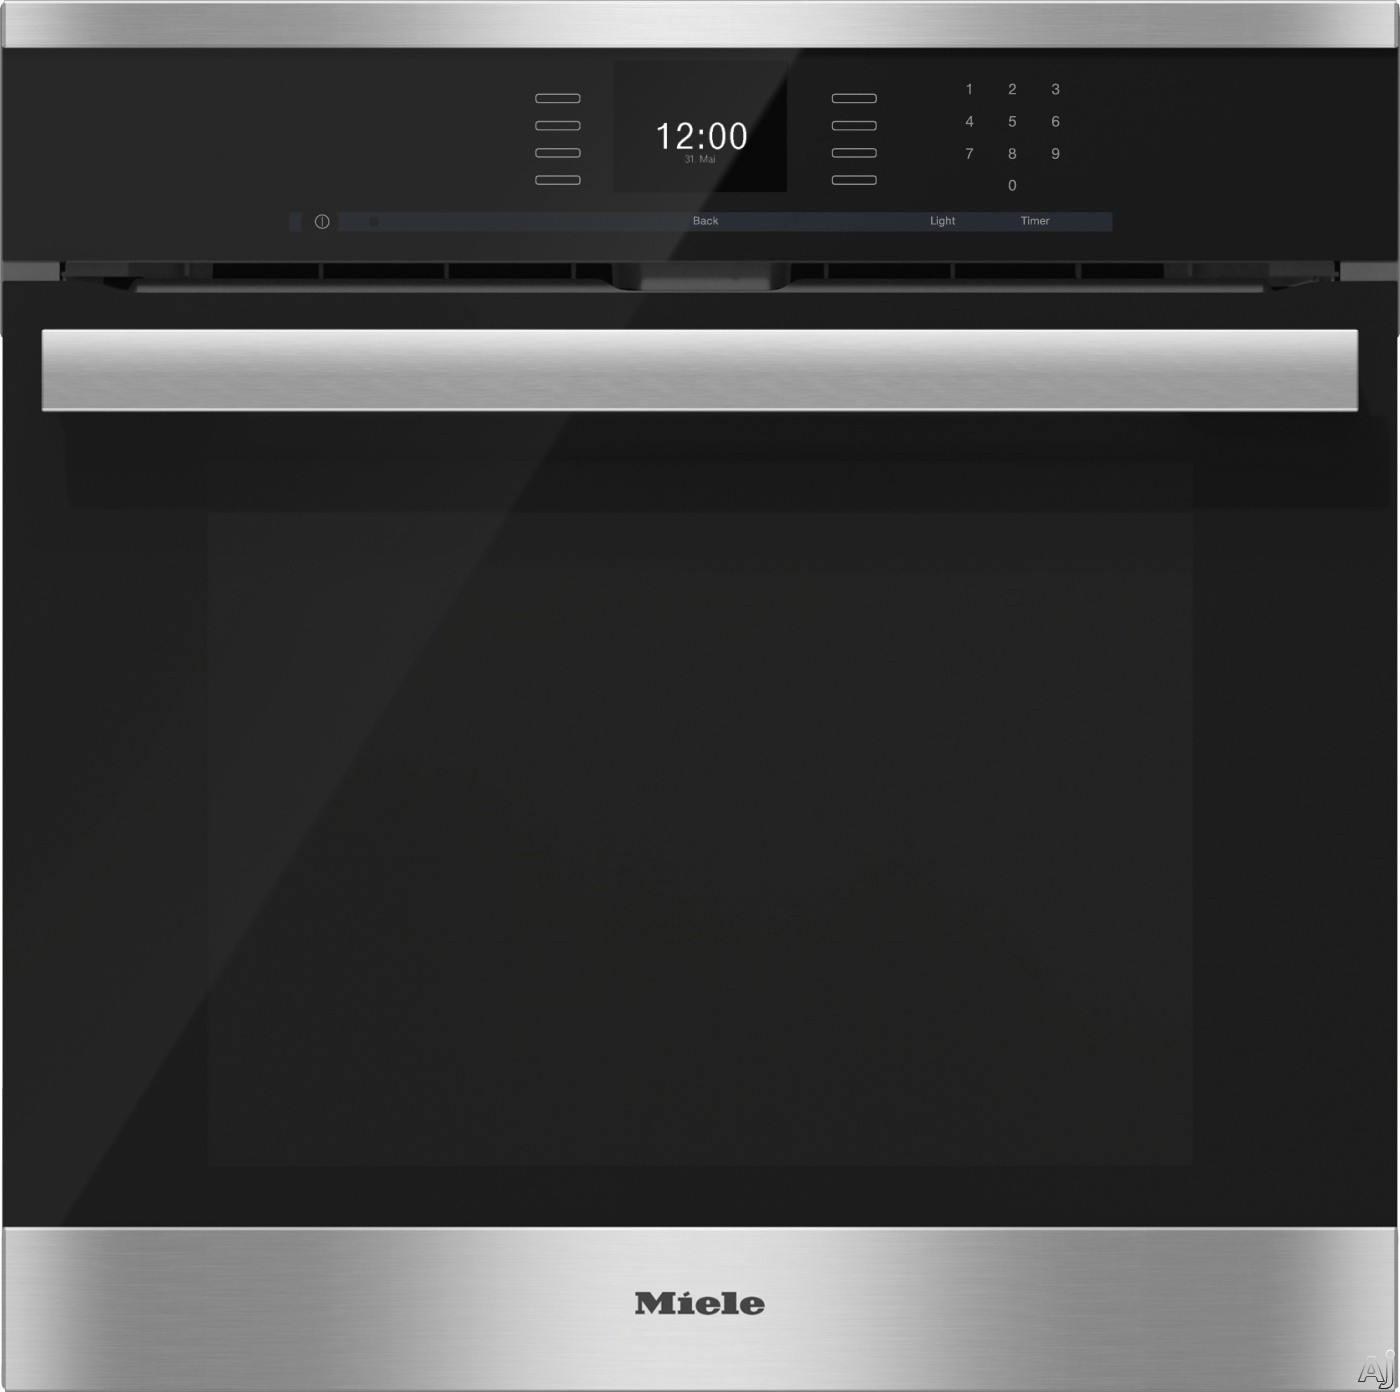 Miele PureLine SensorTronic Series H6660BP 24 Inch Single Electric Wall Oven with Convection Cooking, Self Cleaning Mode, SensorTronic Controls, MasterChef Programs, Temperature Probe, PerfectClean Fi